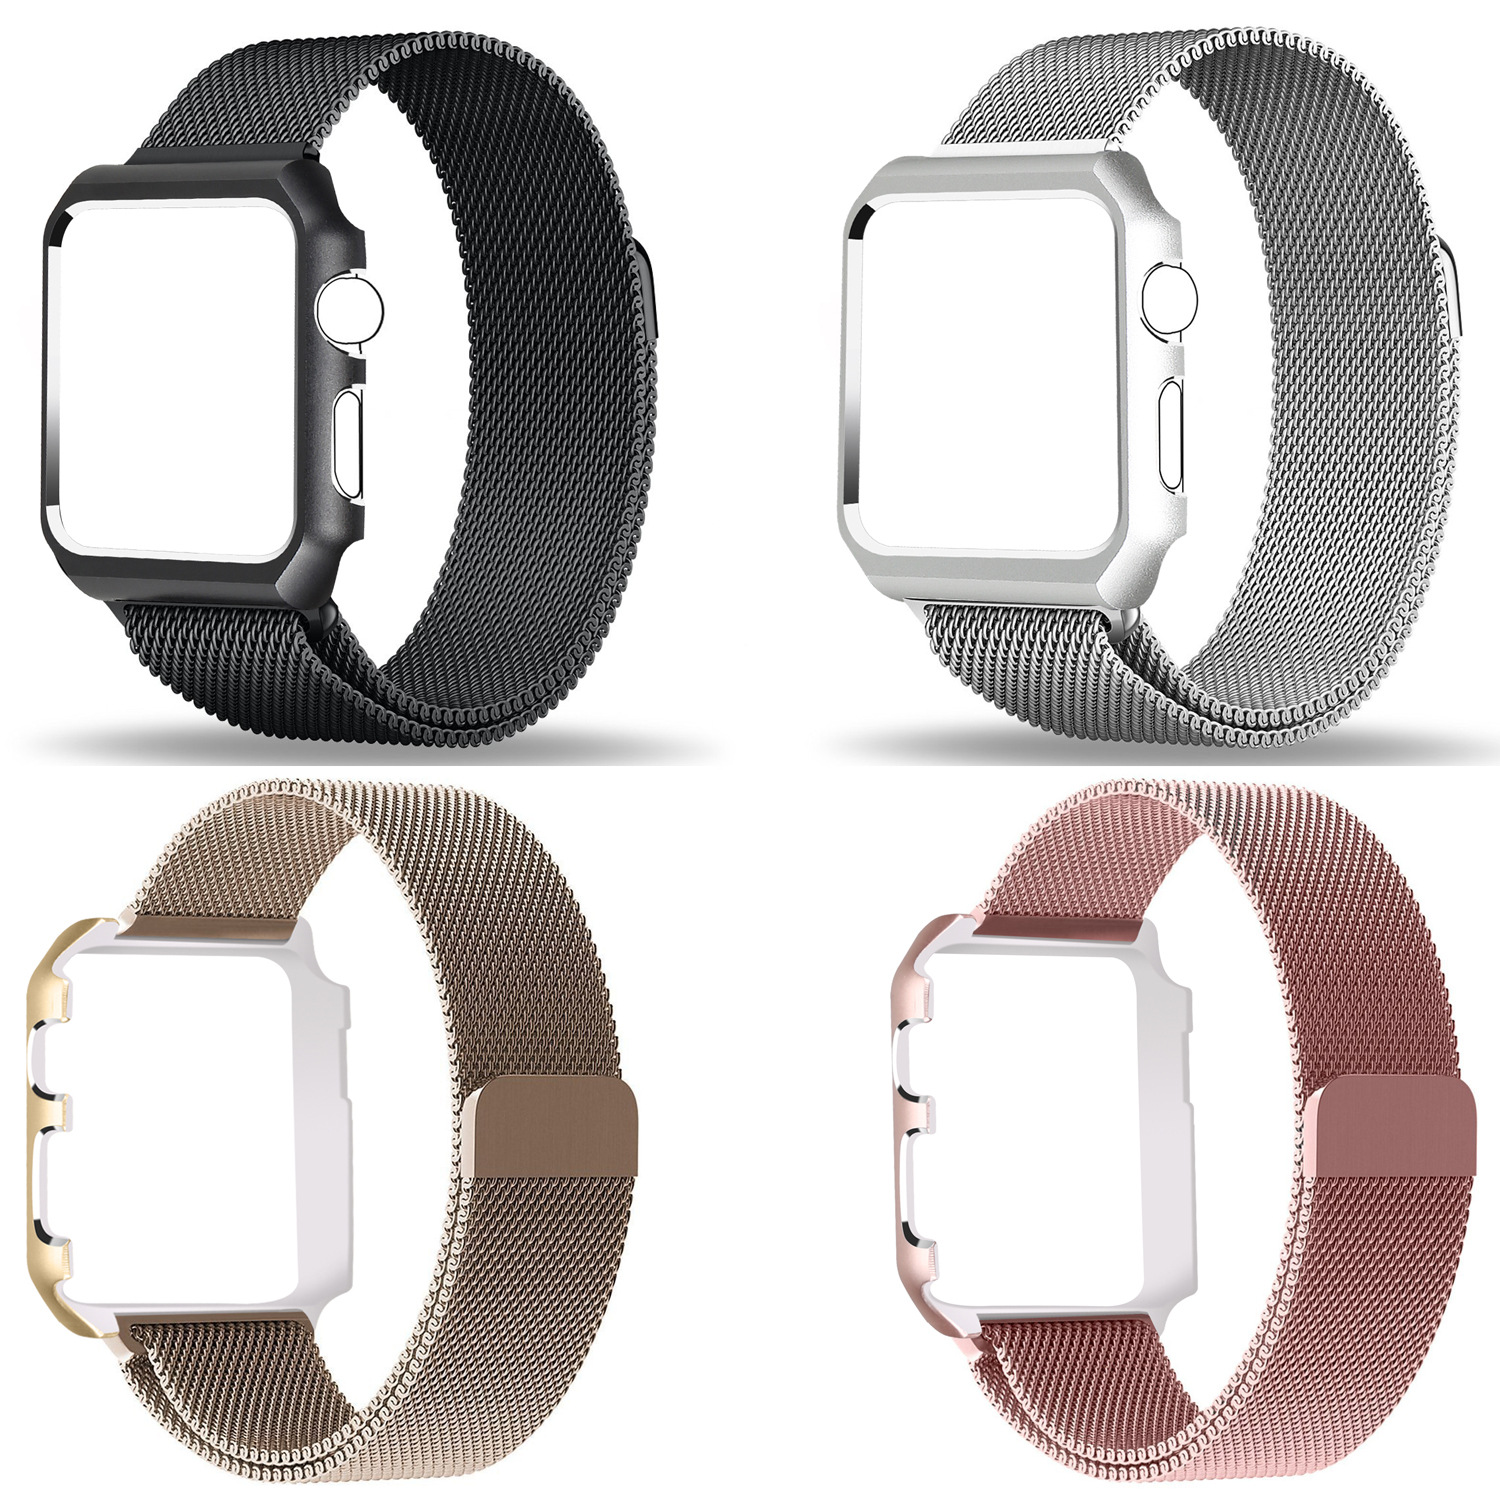 Applicable APPLE Watch Series1/2/3 Milan Nice, Nizza Magnetic Sucker Watch Strap For Apple Character And Picture Frame Watch Str